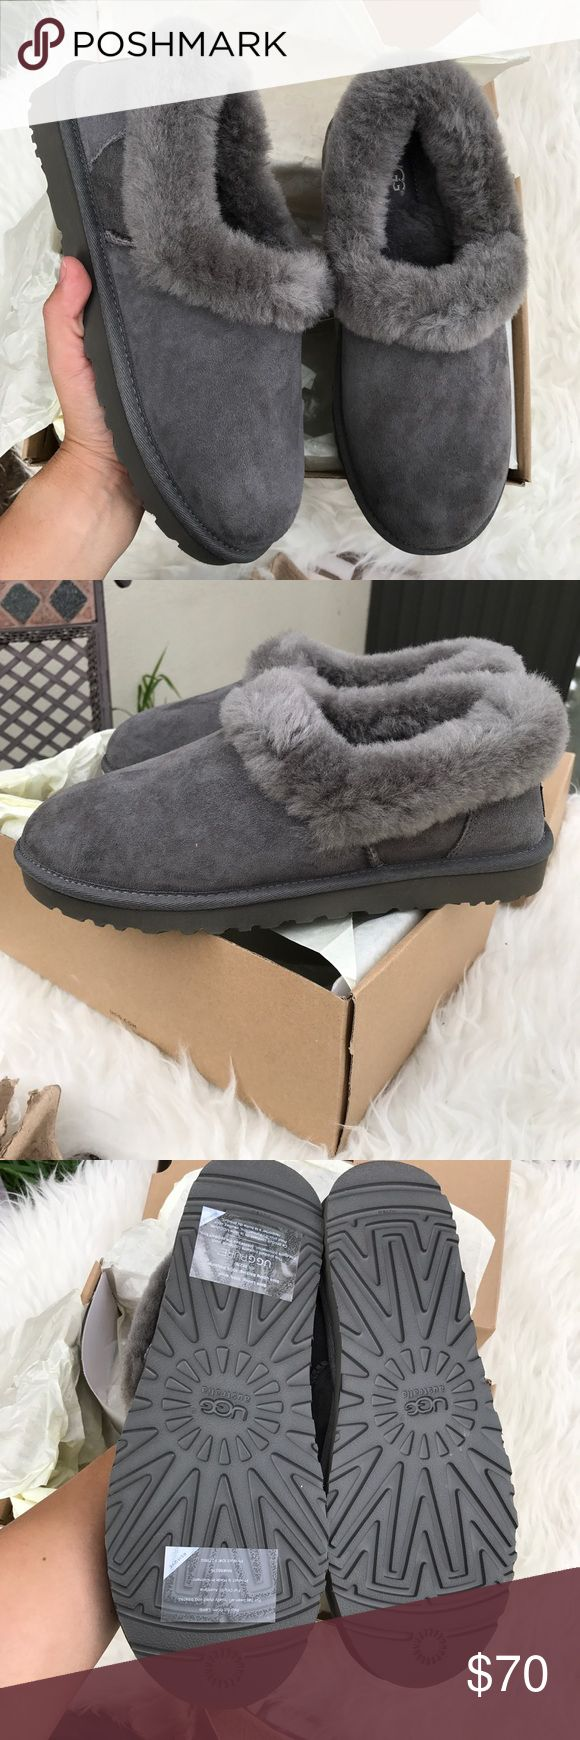 UGG authentic genuine shearling slippers grey sz 7 UGG authentic genuine shearling slippers grey sz 7 NEW 100% authentic! Improved style ; more durable, and new packaging .Foam-cushioned footbed Genuine shearling and leather upper/100% UGGpure wool lining/EVA sole Imported Women's Shoes itemcloset#docin UGG Shoes